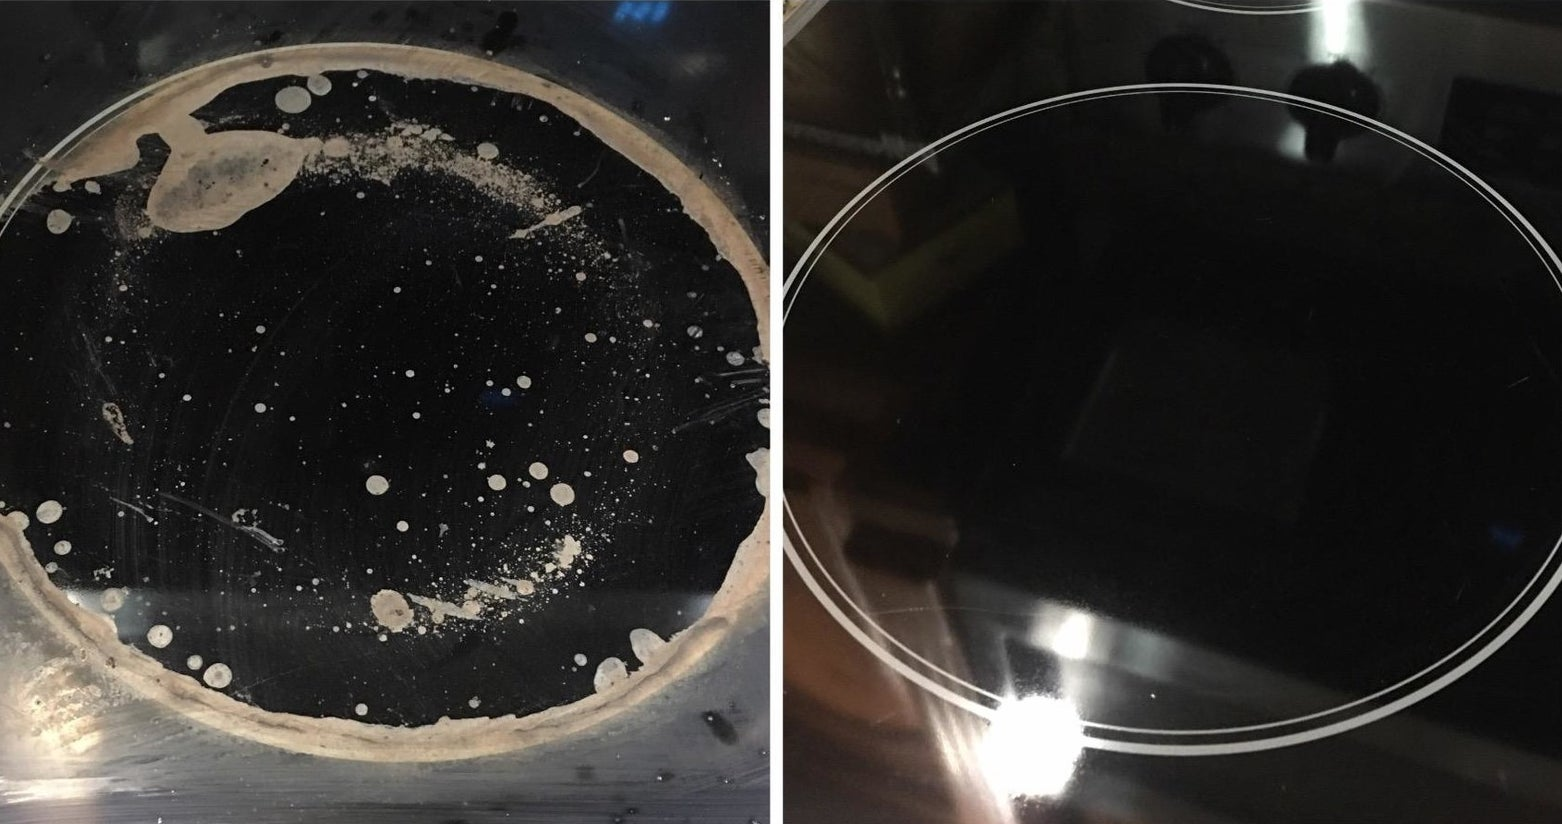 Reviewer photo showing a cooktop before and after using the cleaning kit